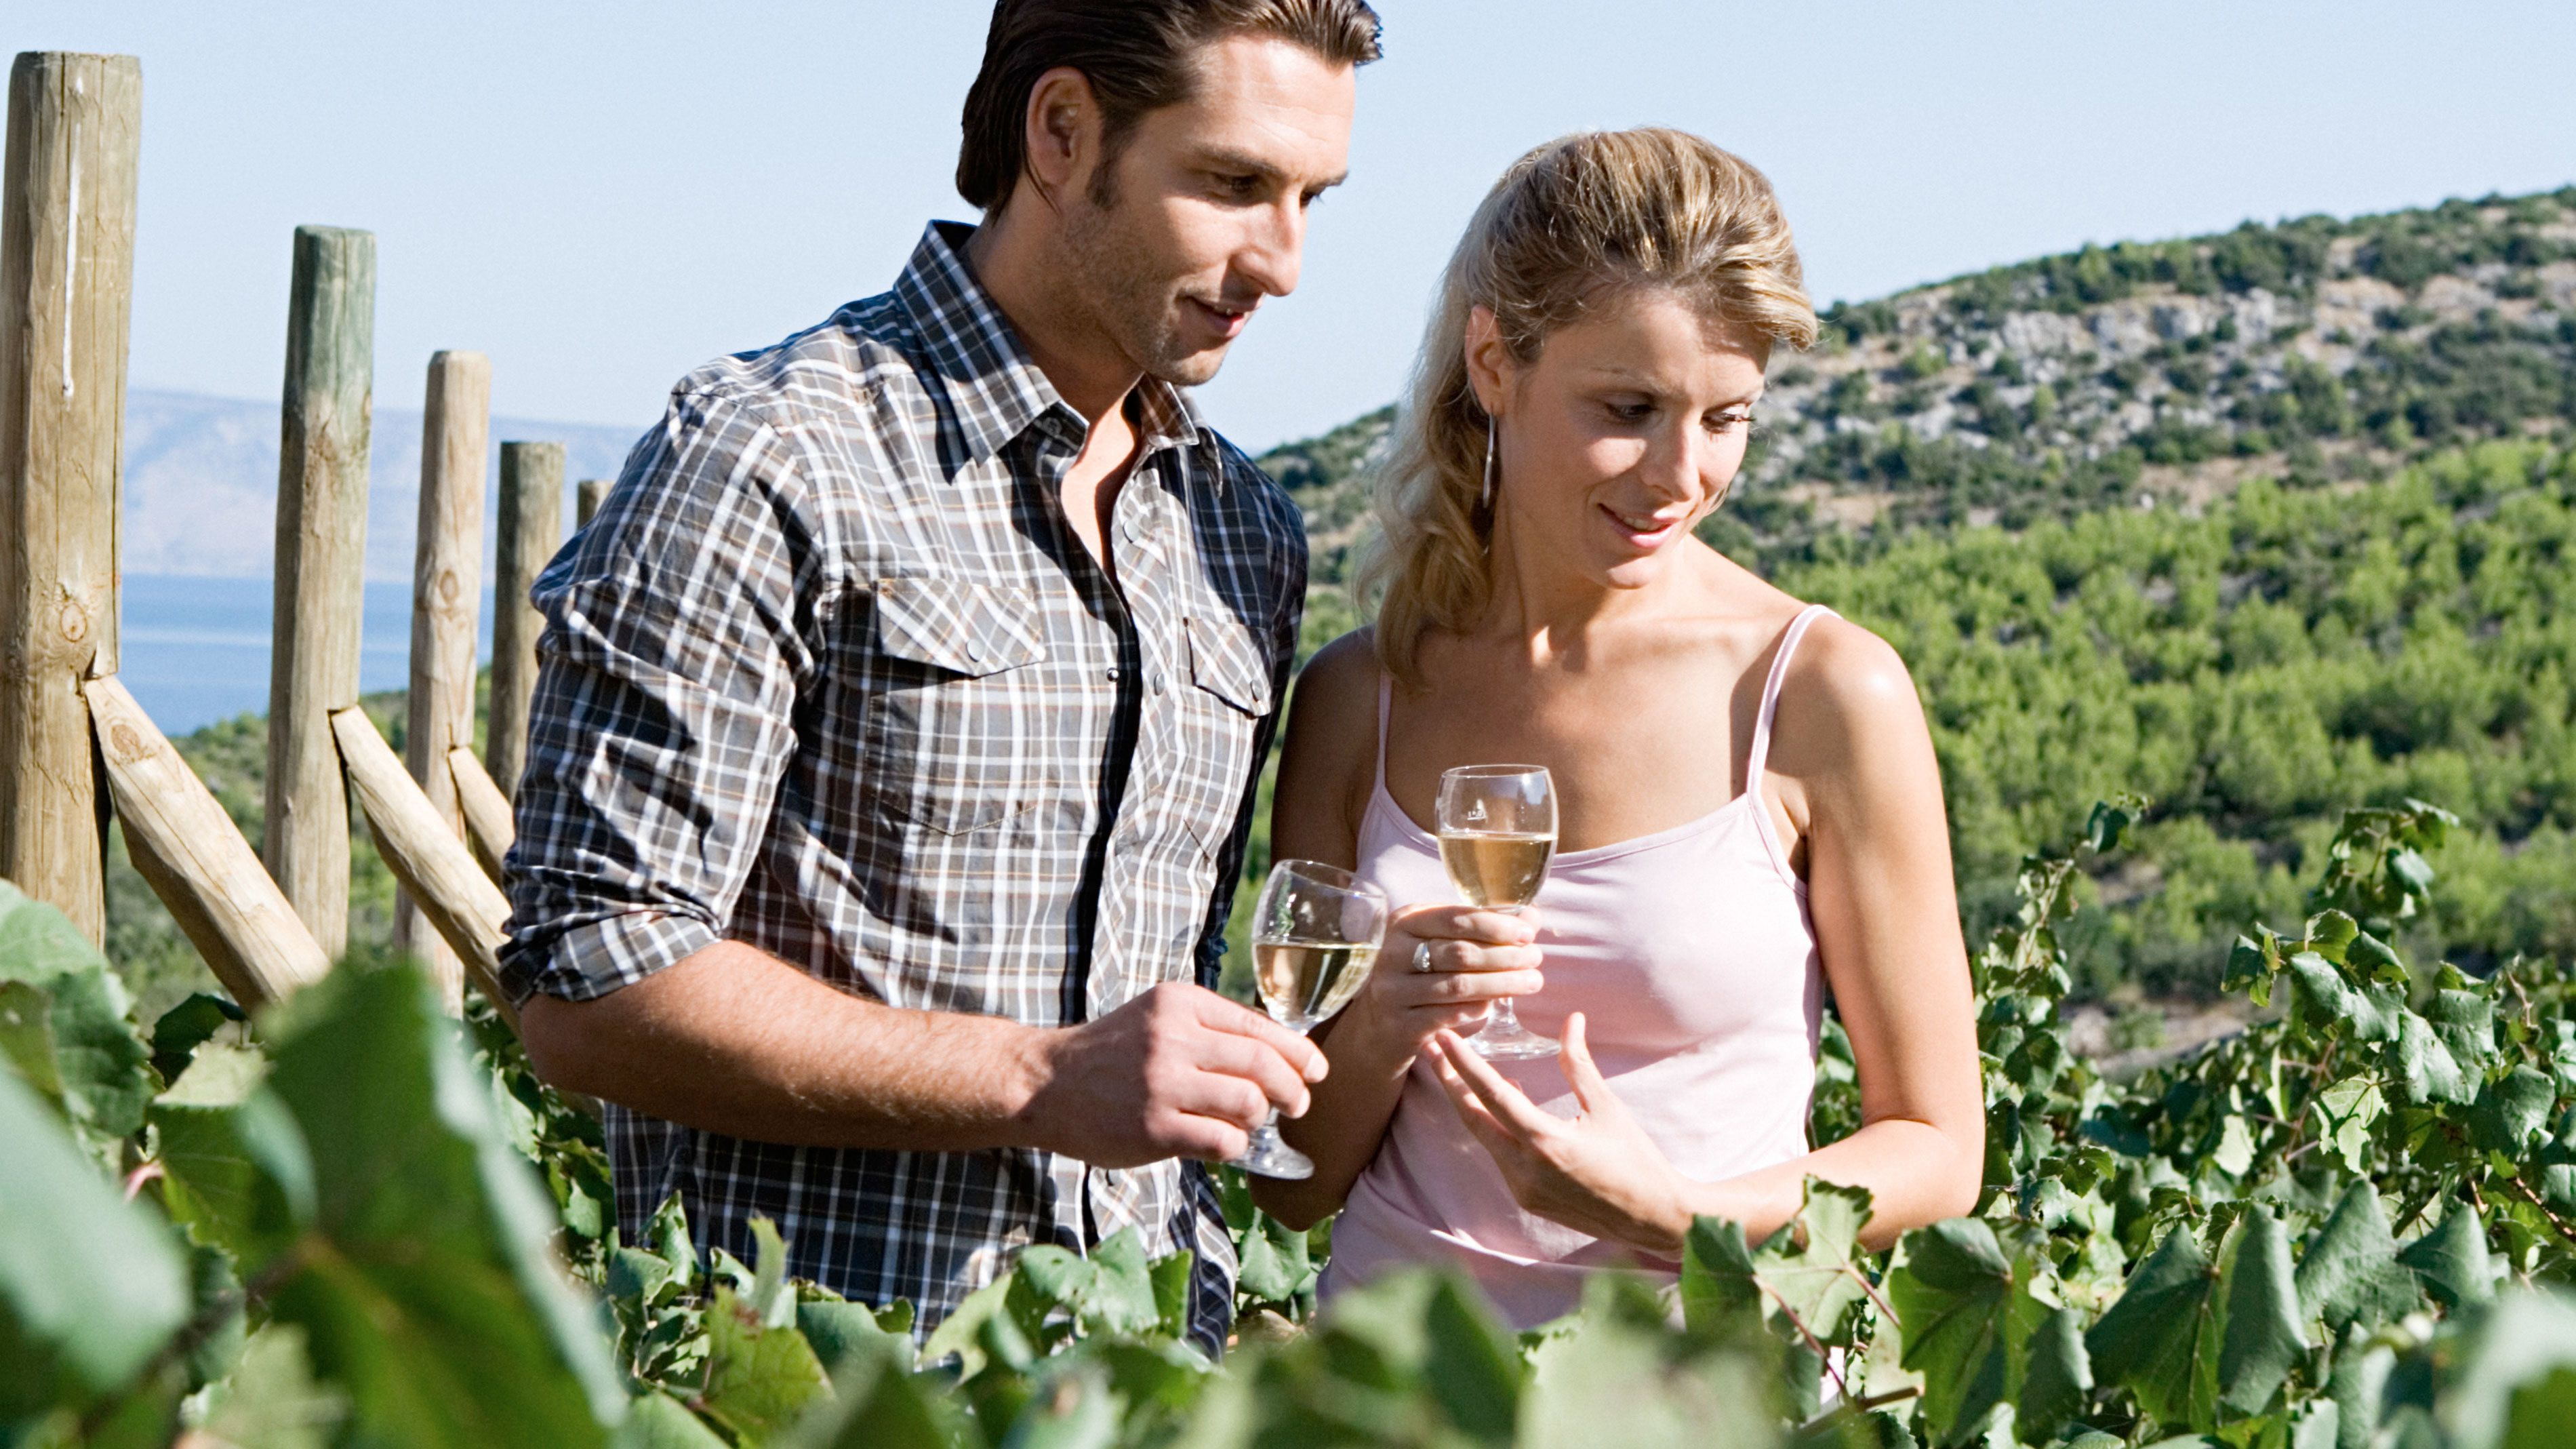 Couple holding wine glasses and standing in the vineyards in Sonoma